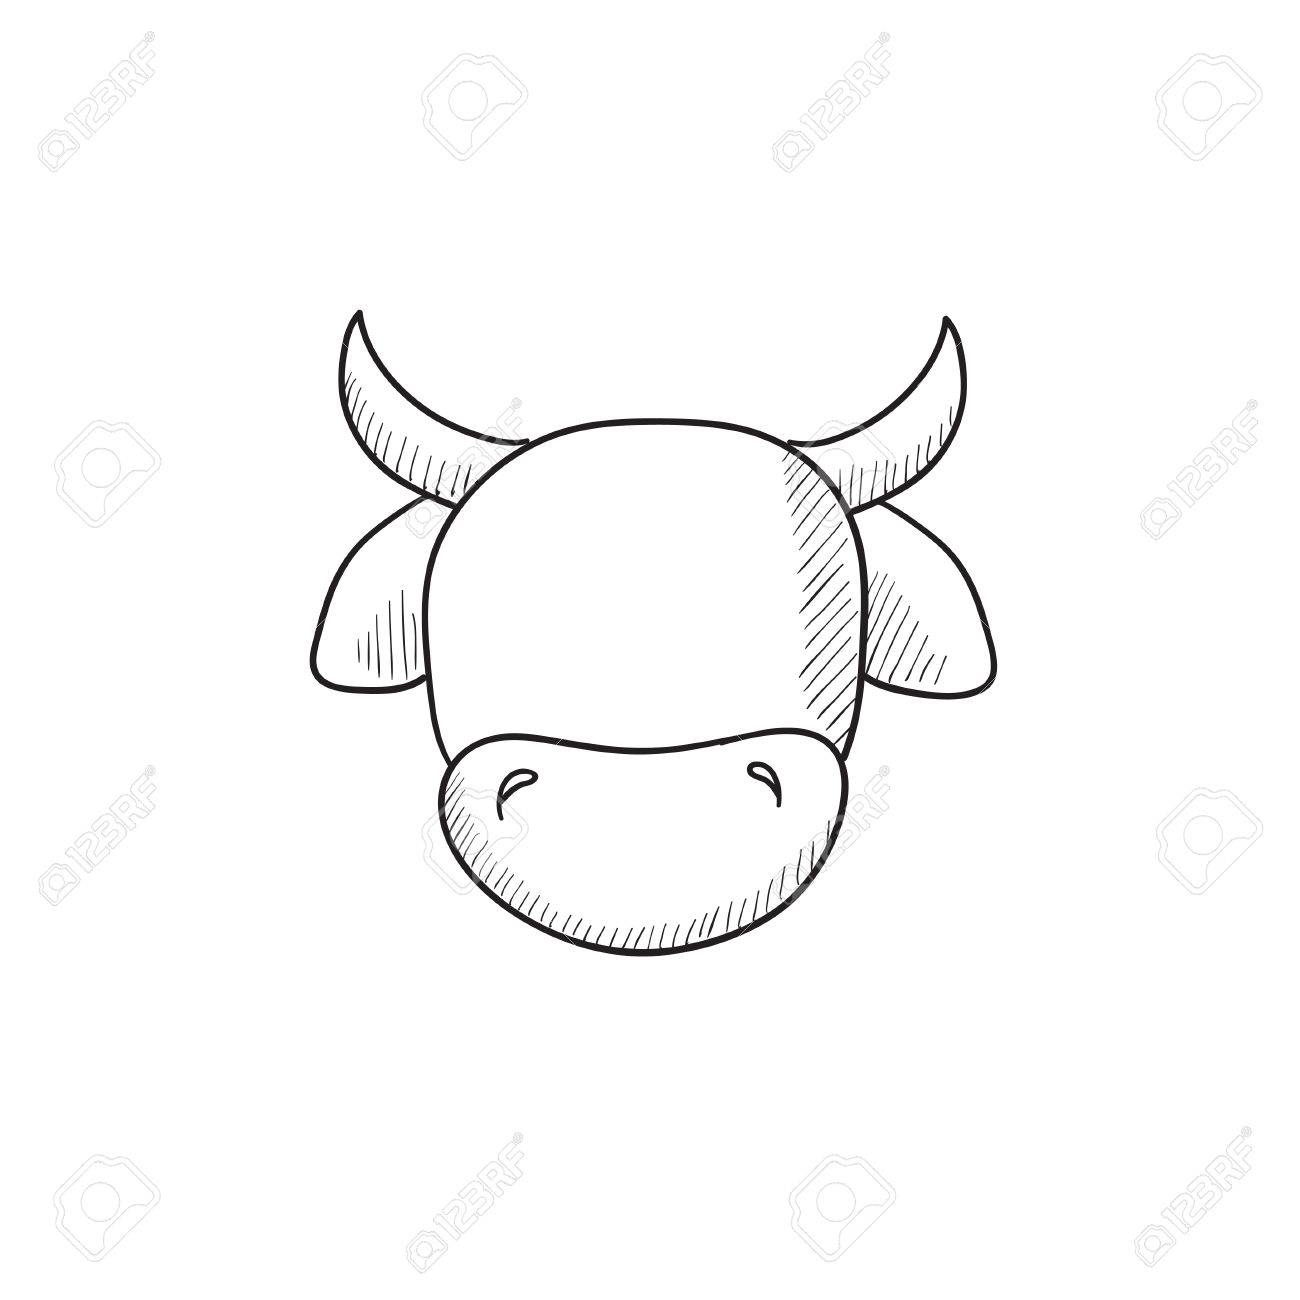 1300x1300 Cow Head Vector Sketch Icon Isolated On Background. Hand Drawn